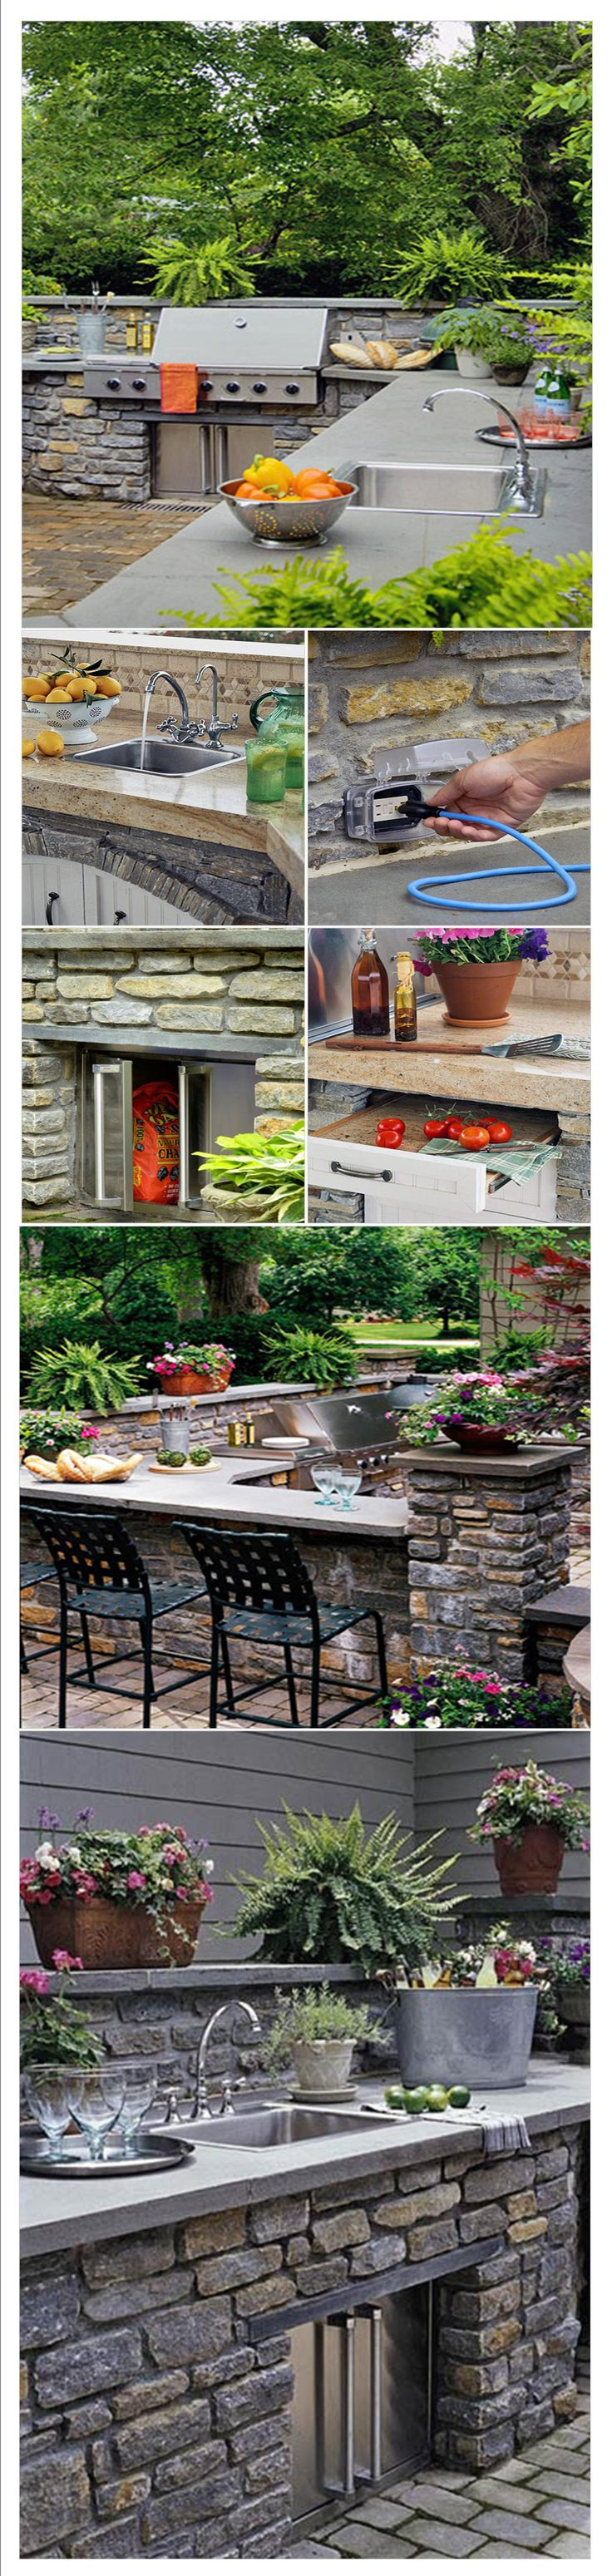 107 best outdoor kitchen images on pinterest outdoor kitchens